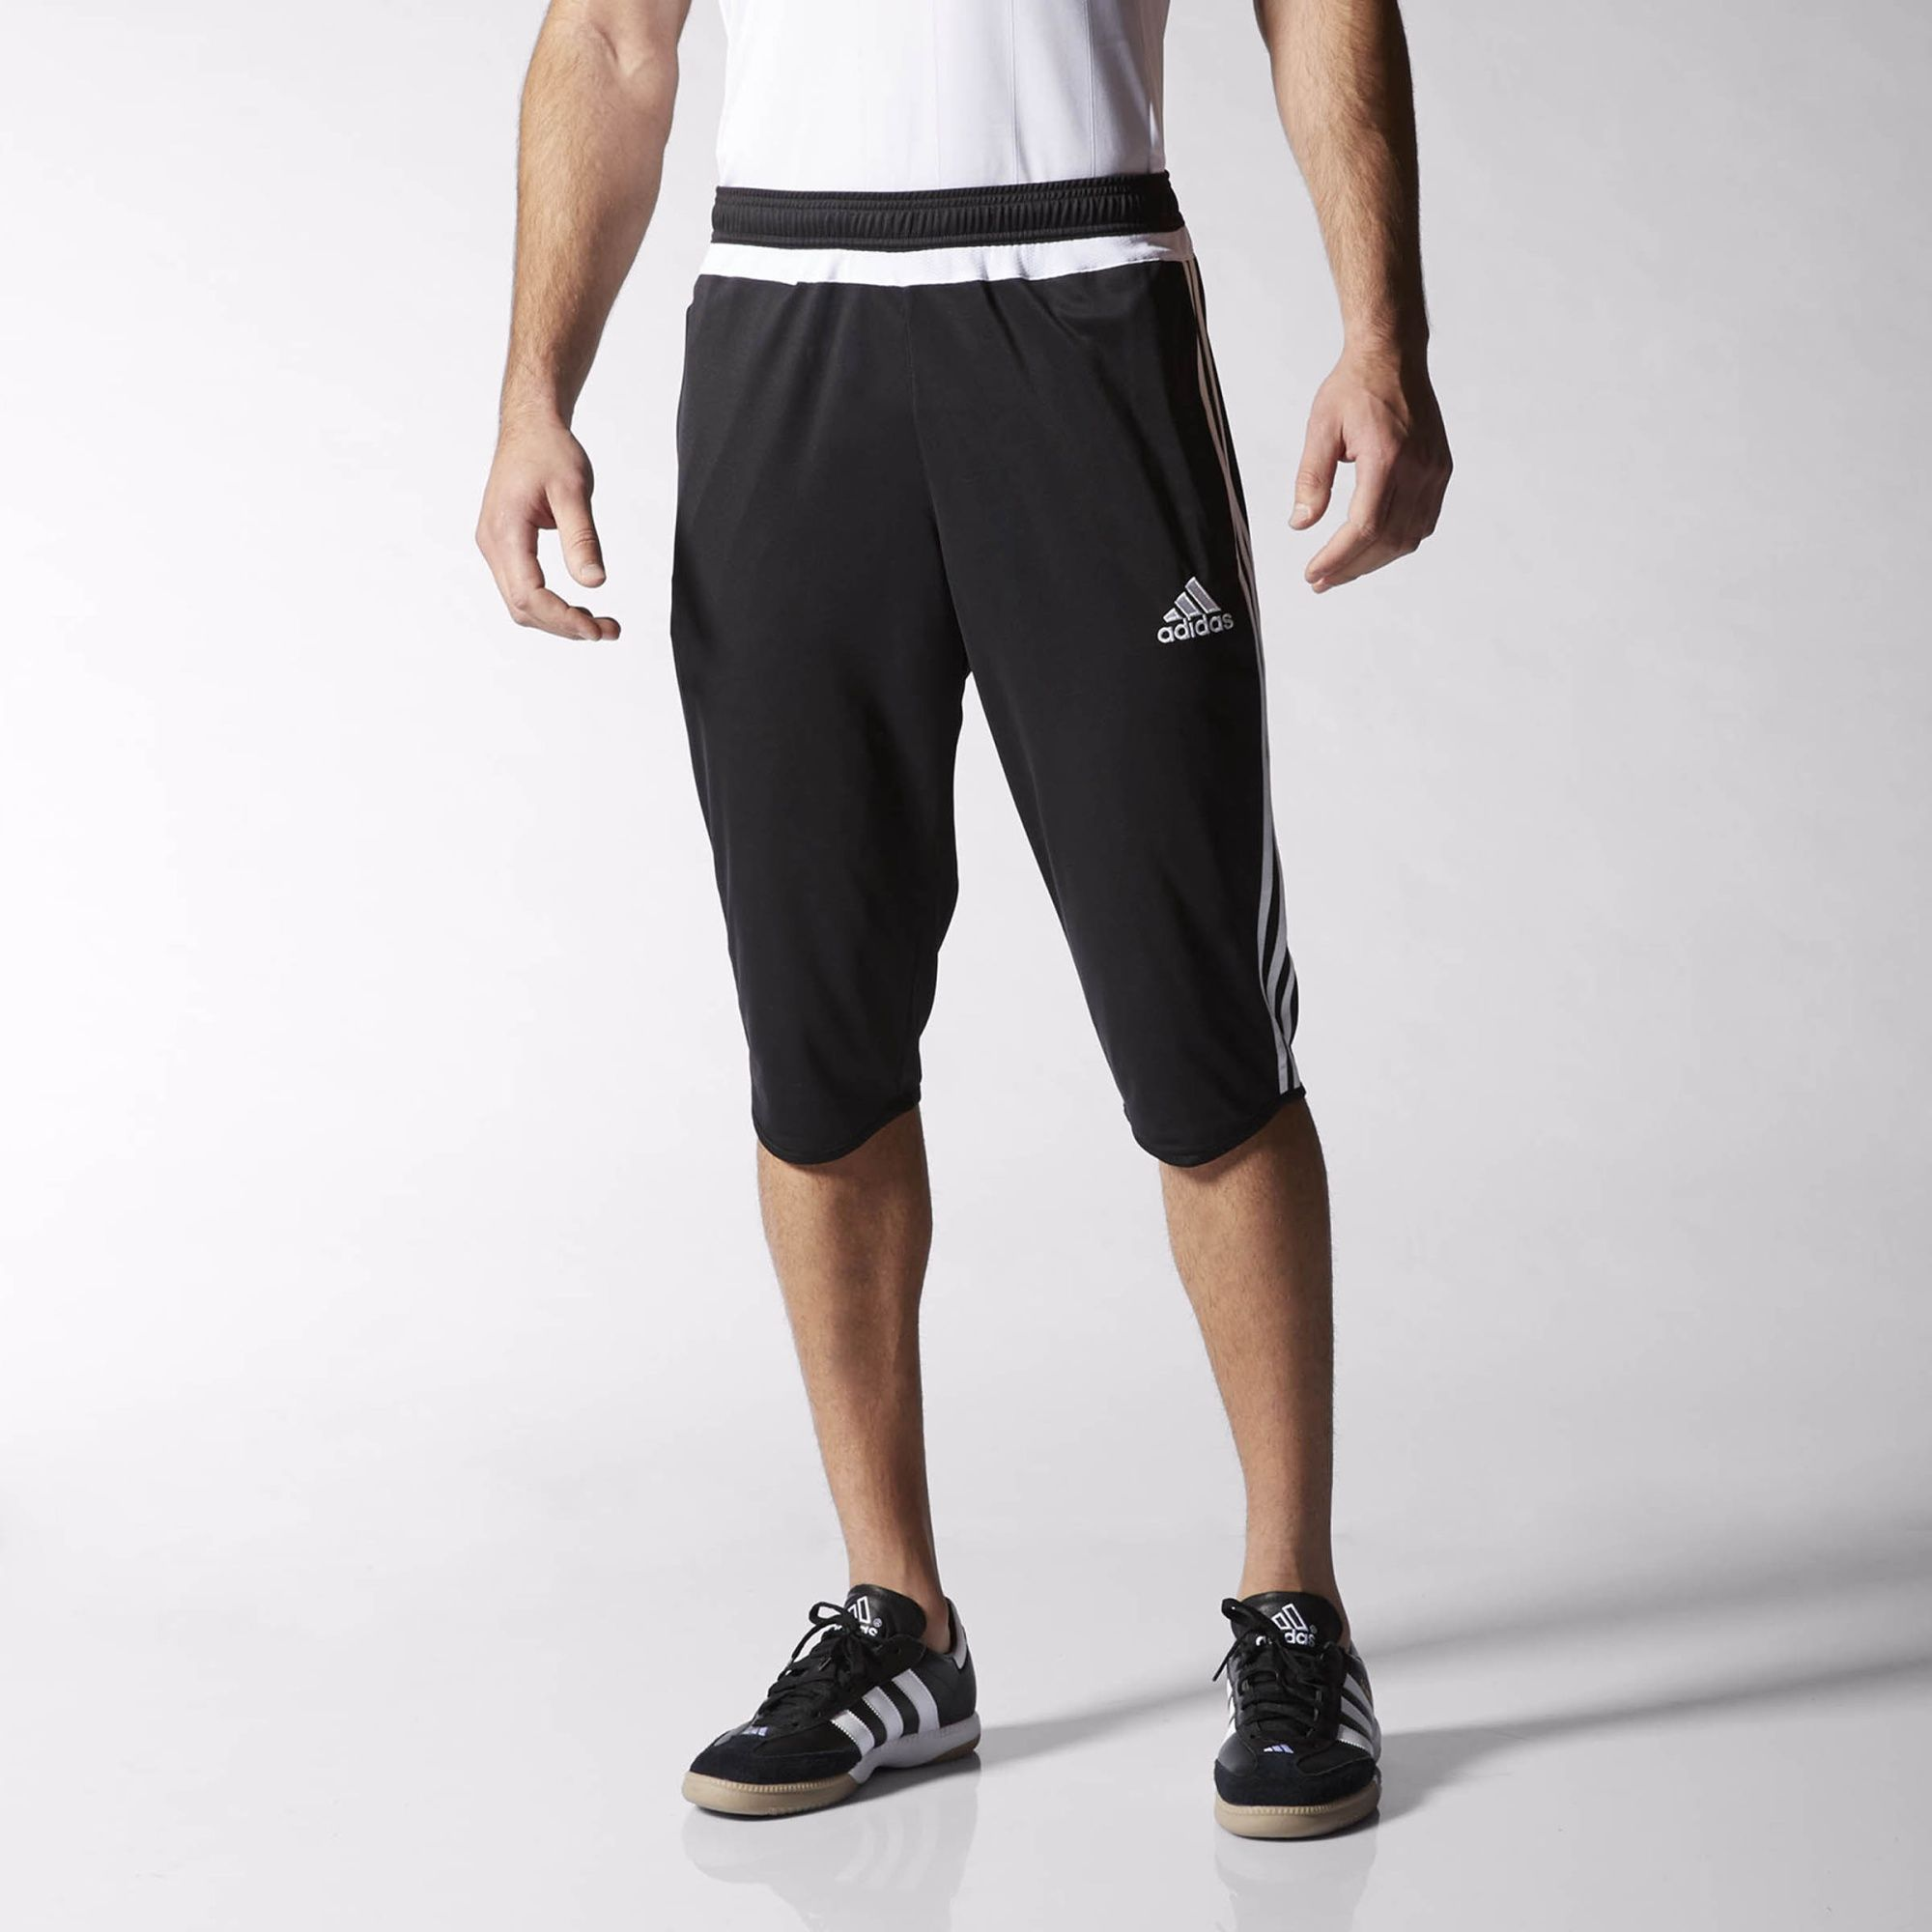 A threequarter length makes these men's soccer pants